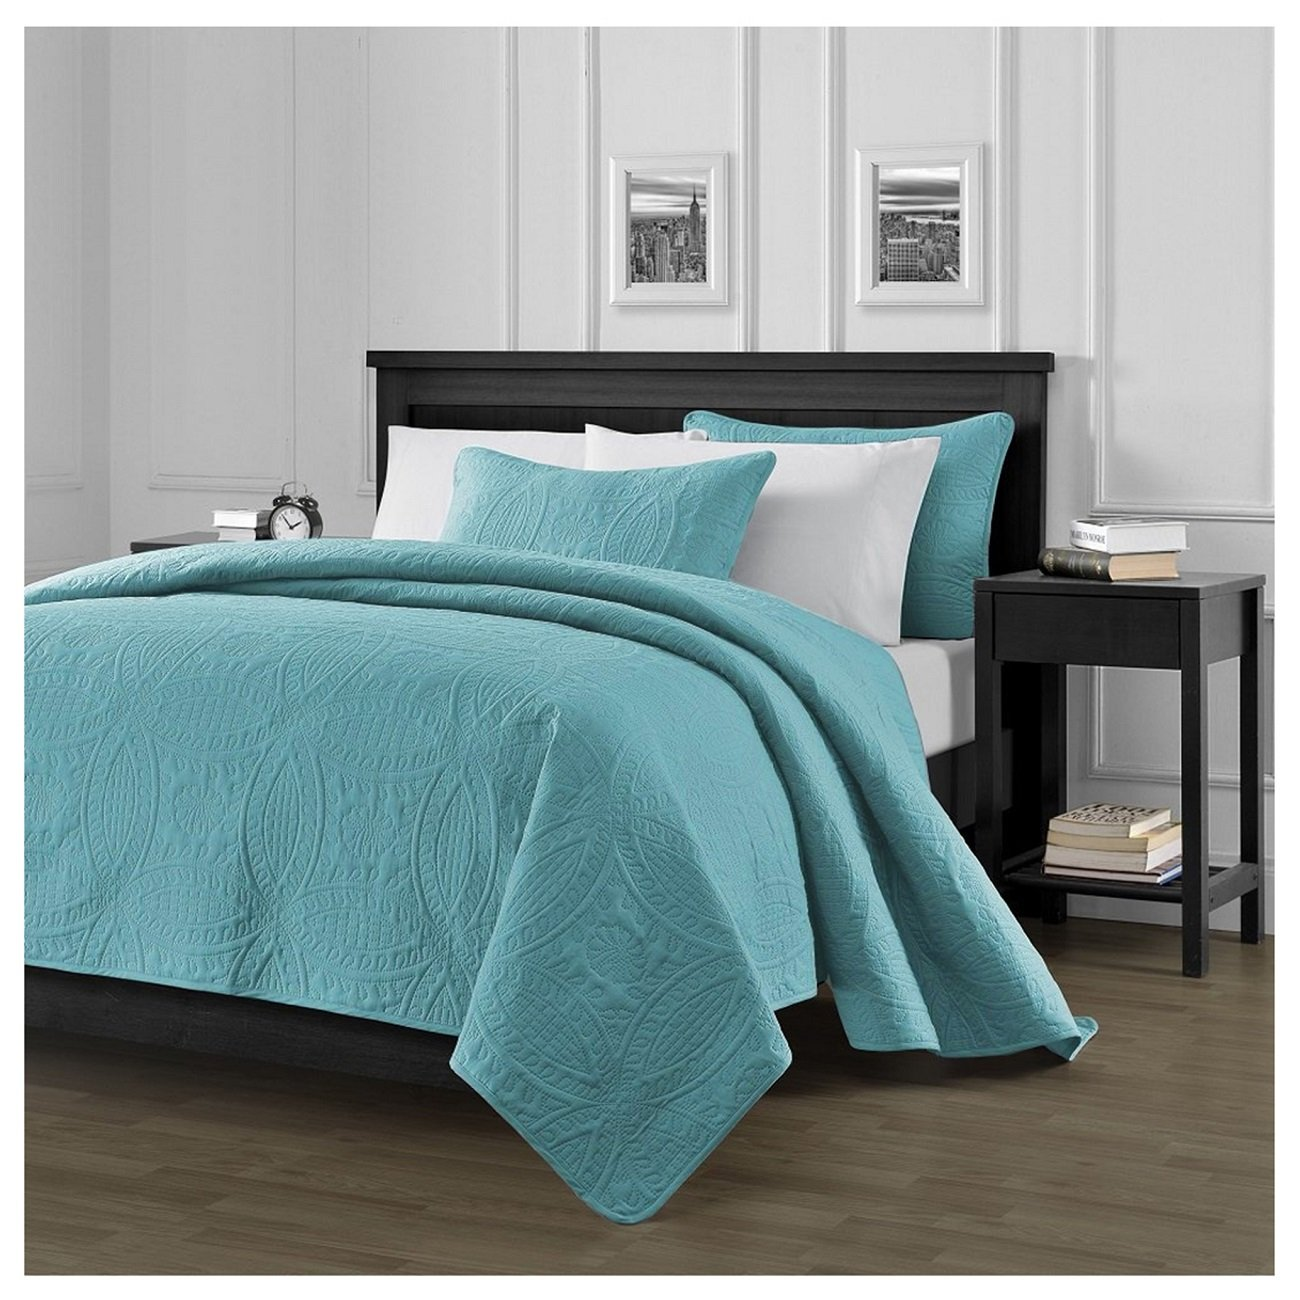 Chezmoi Collection Austin 3-piece Oversized Bedspread Coverlet Set (Queen, Turquoise